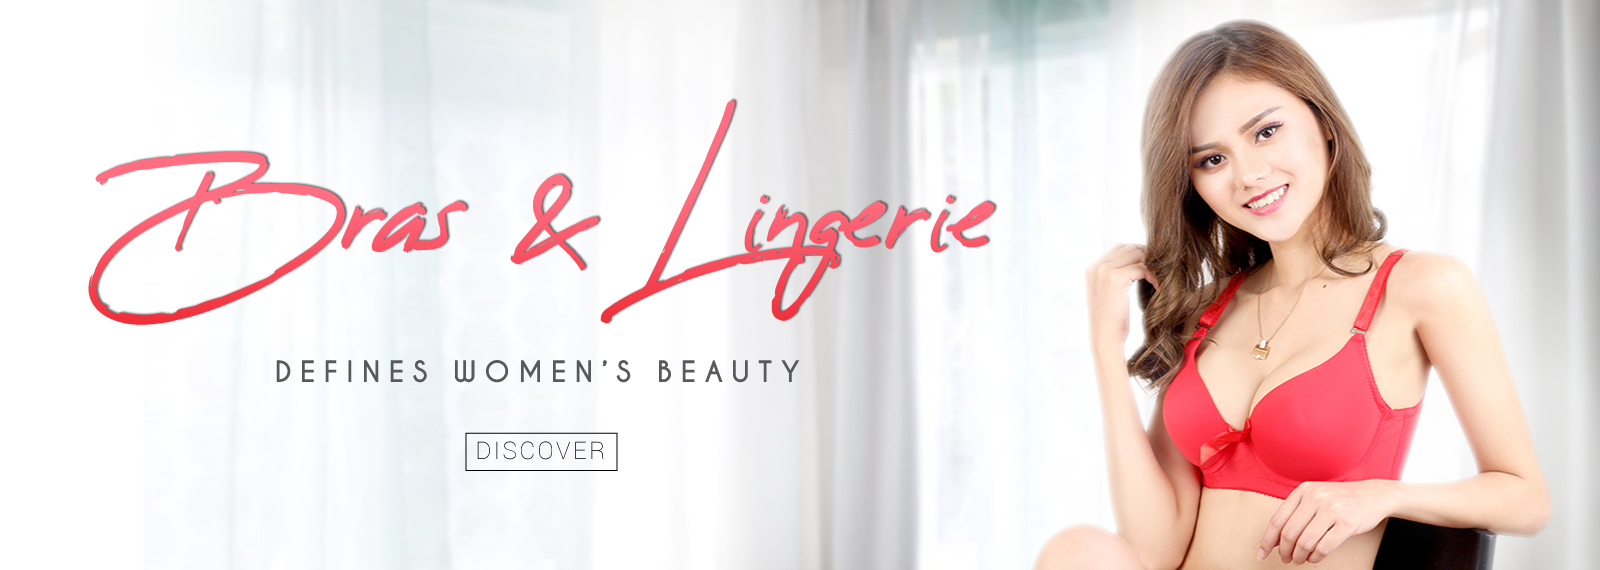 Bras and Lingerie